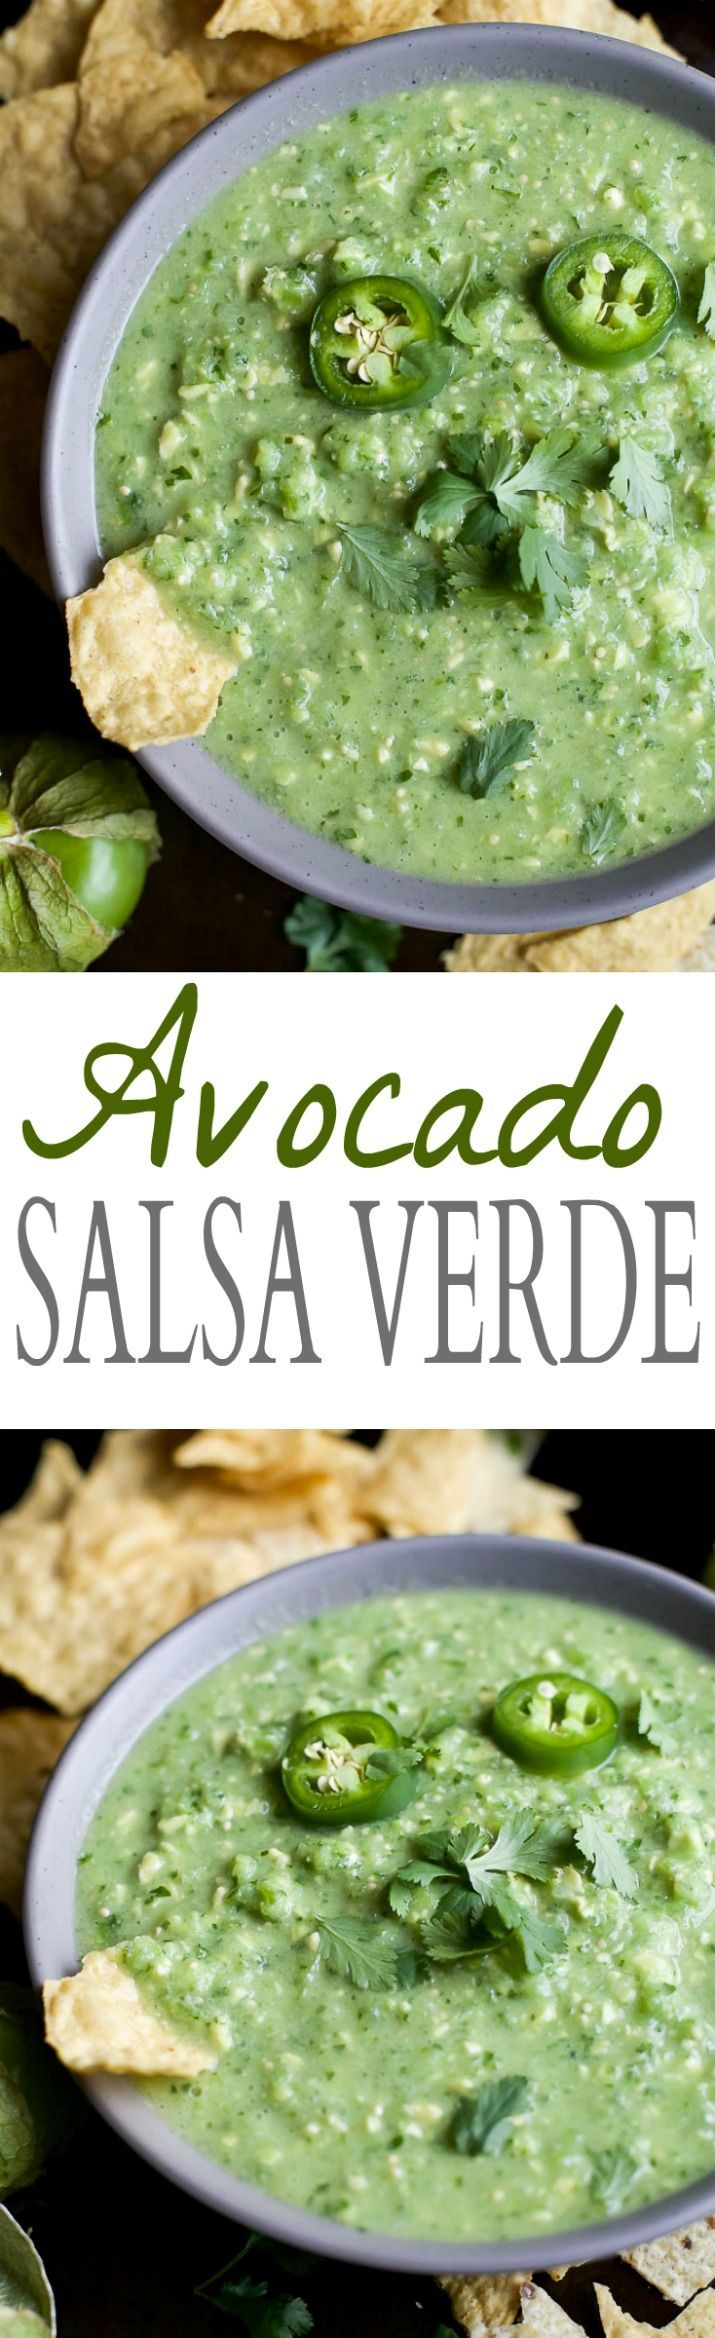 AVOCADO SALSA VERDE, an easy to make recipe with less than 10 ingredients! This salsa is perfect for an appetizer, snack or a sauce drizzle on top of some chicken or fish! | http://joyfulhealthyeats.com | gluten free recipes | paleo recipes